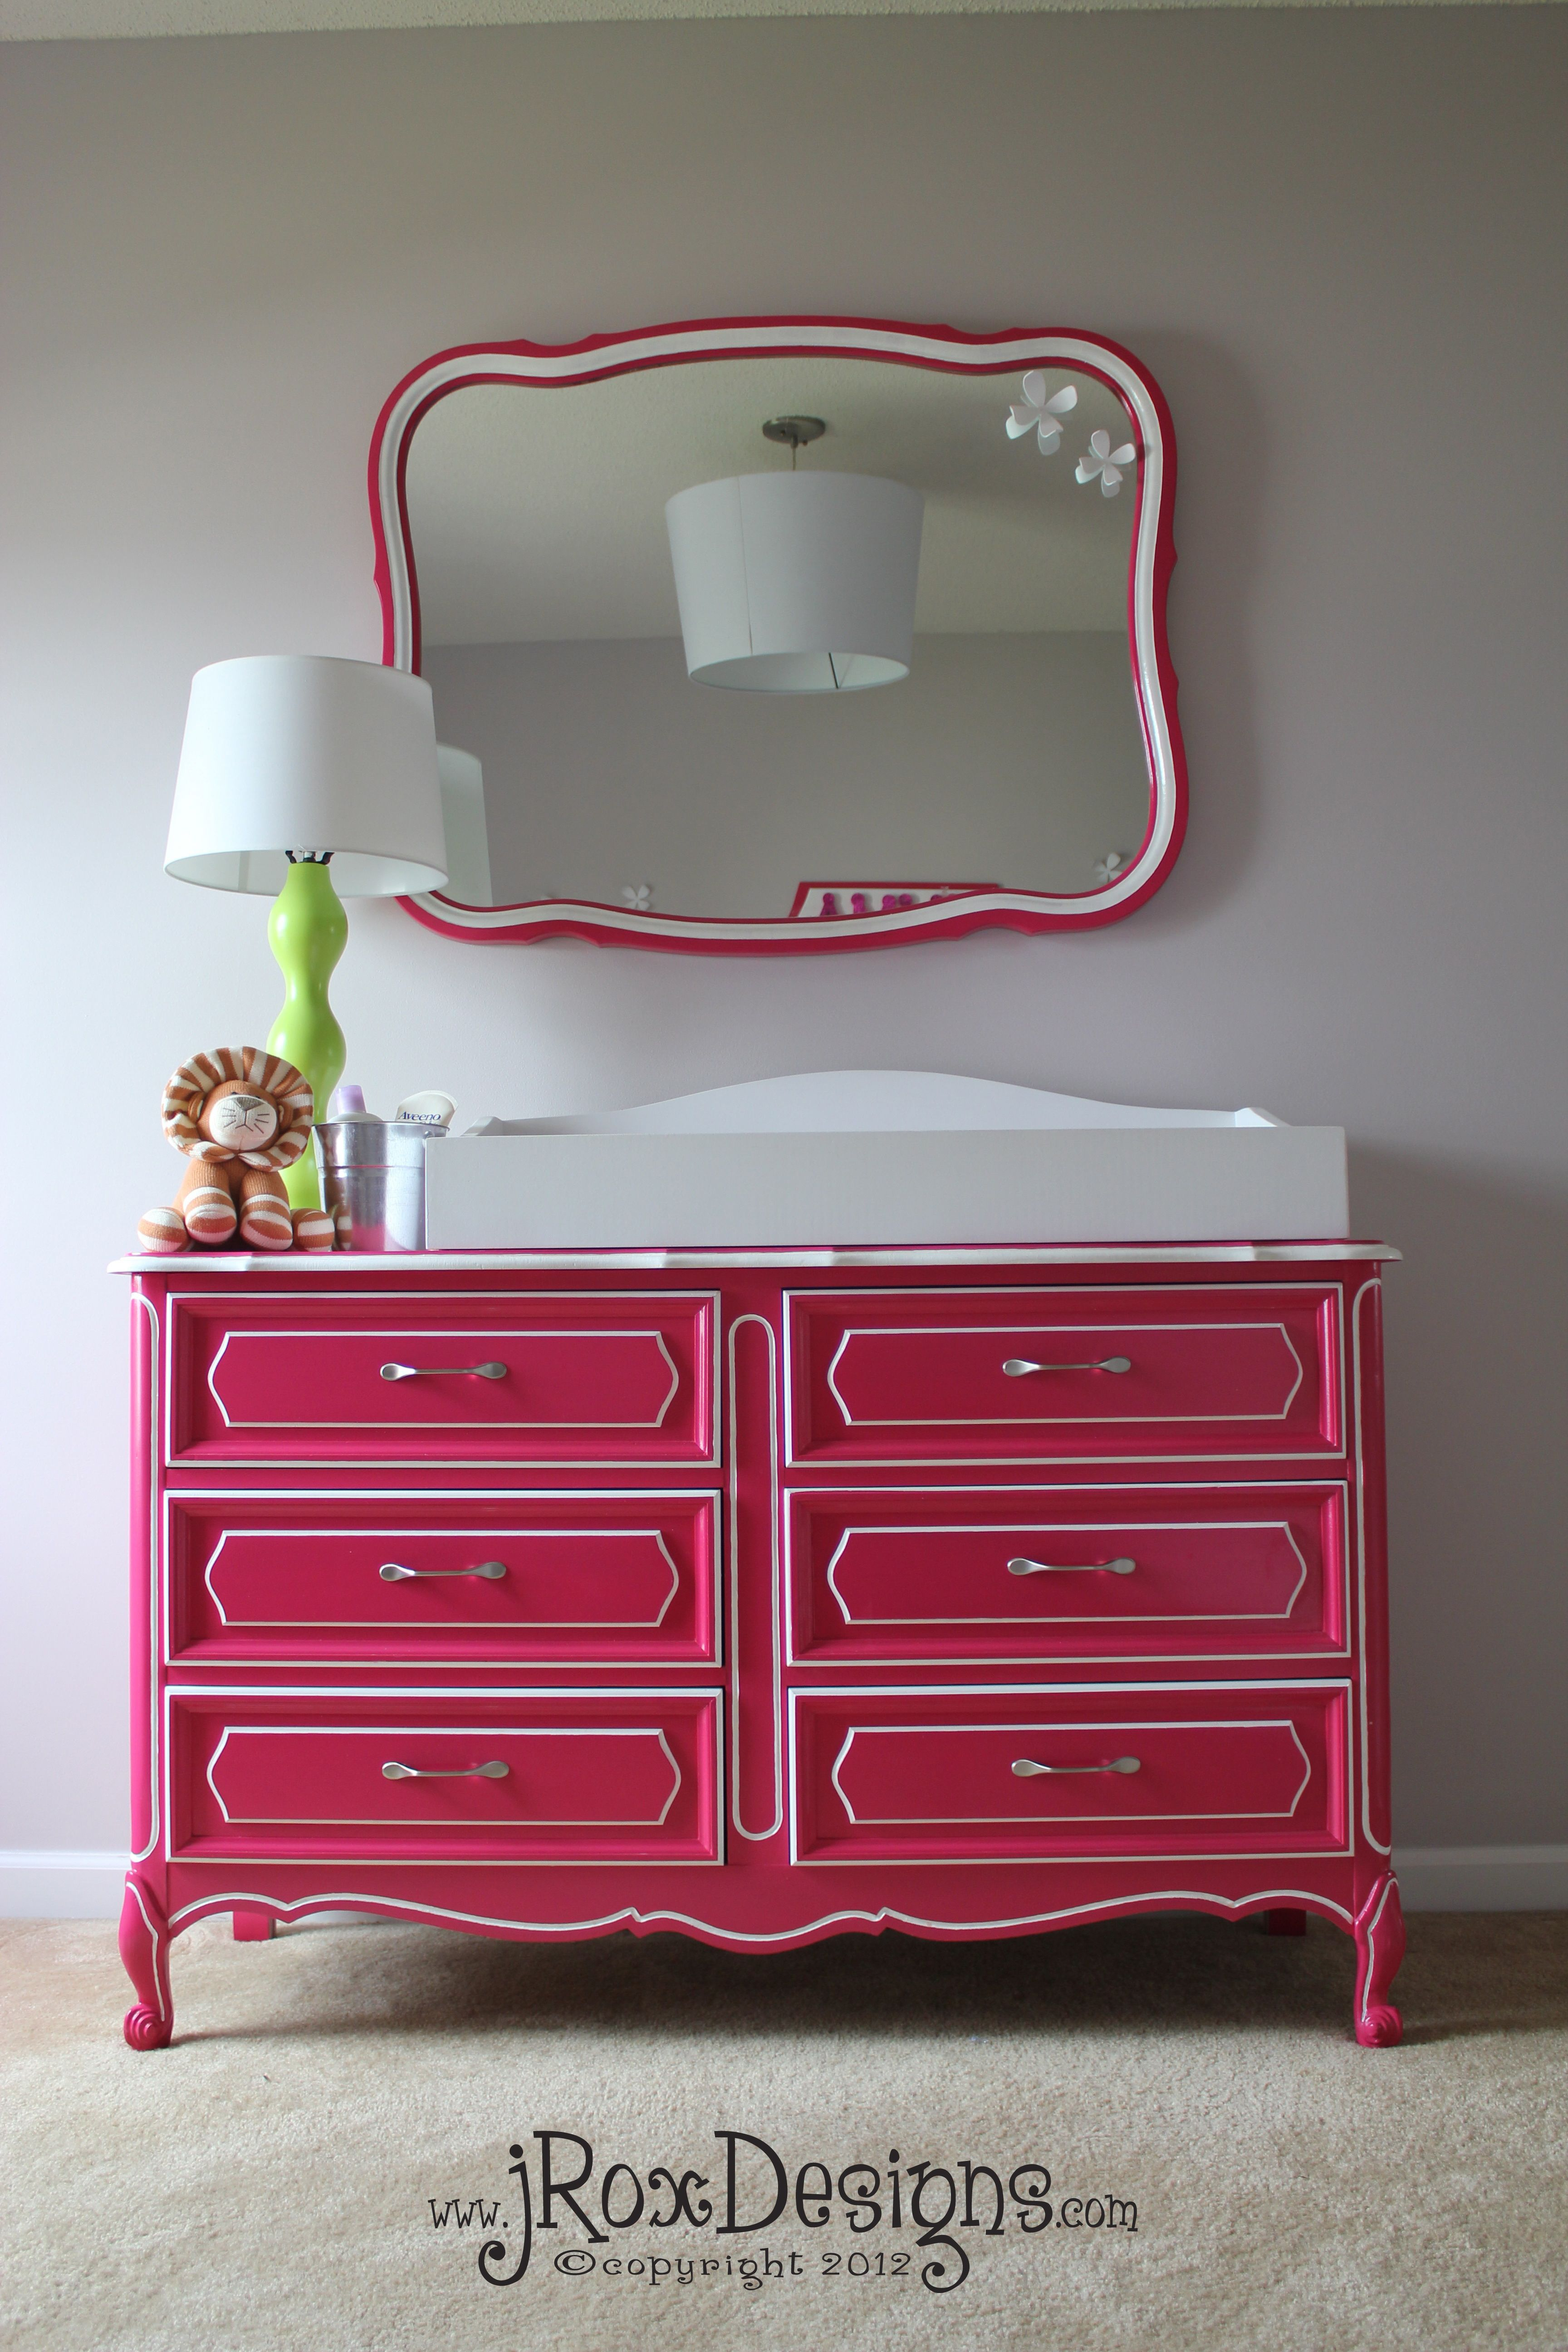 Custom Painted French Provencal Dresser By Jroxdesigns Copy